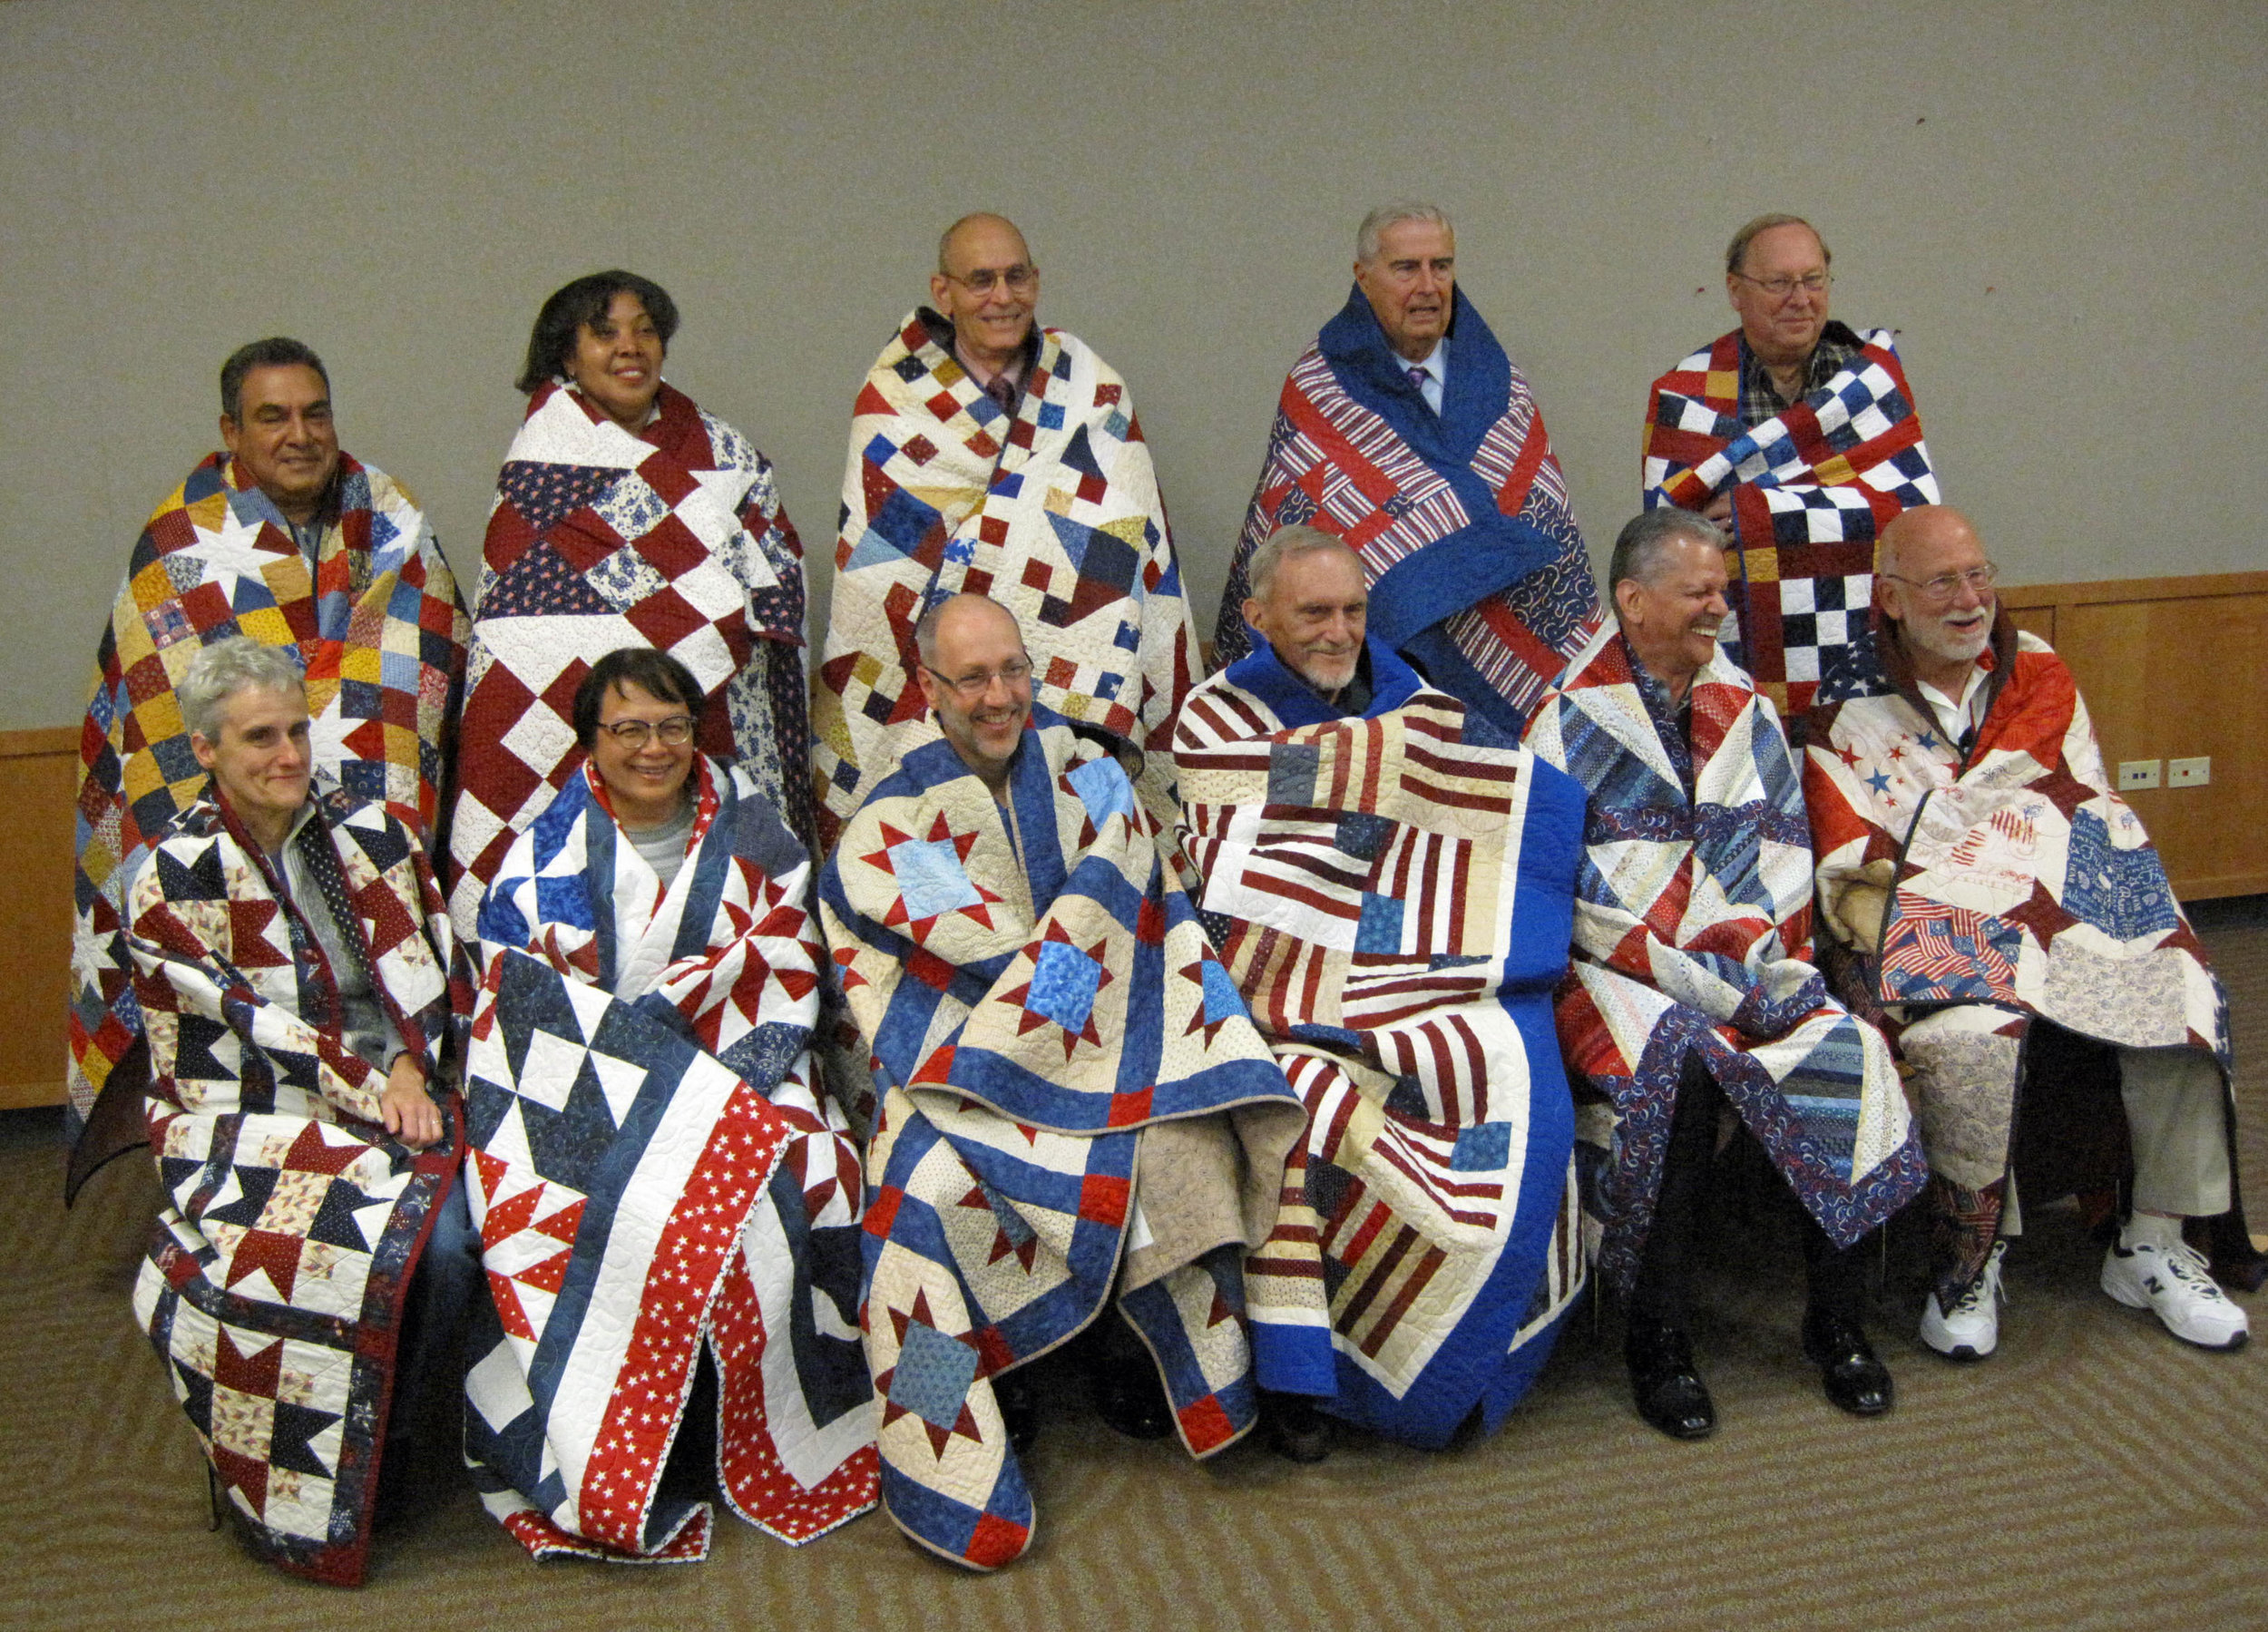 Eleven of the 12 veterans in Lake Zurich who were awarded quilts in 10/23, made by VQ guild members.